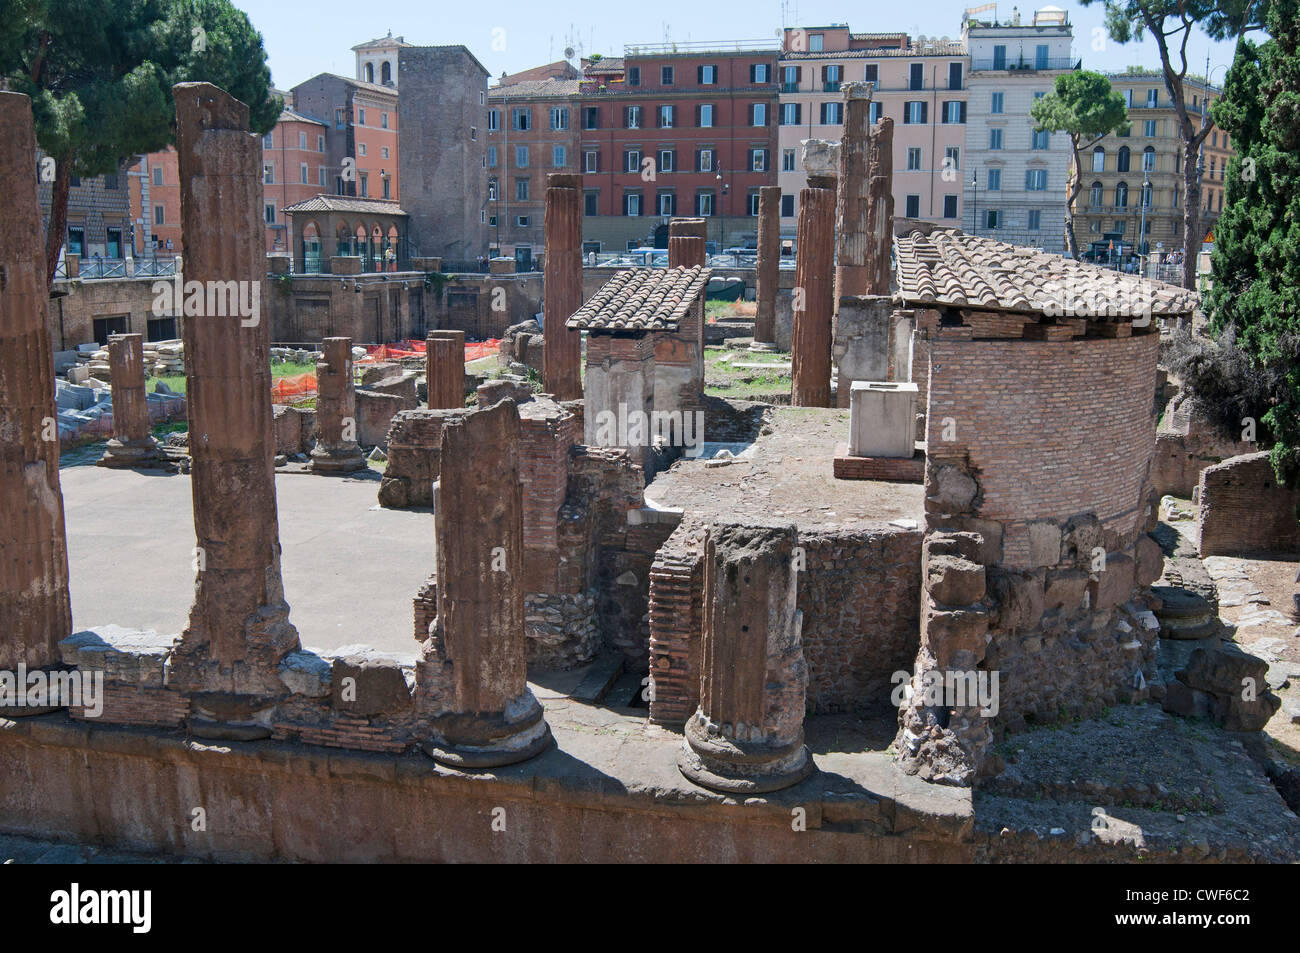 Temple A, Temple of Juturna, Largo di Torre Argentina is a square in Rome, Italy, that is the site of an Archaeological - Stock Image